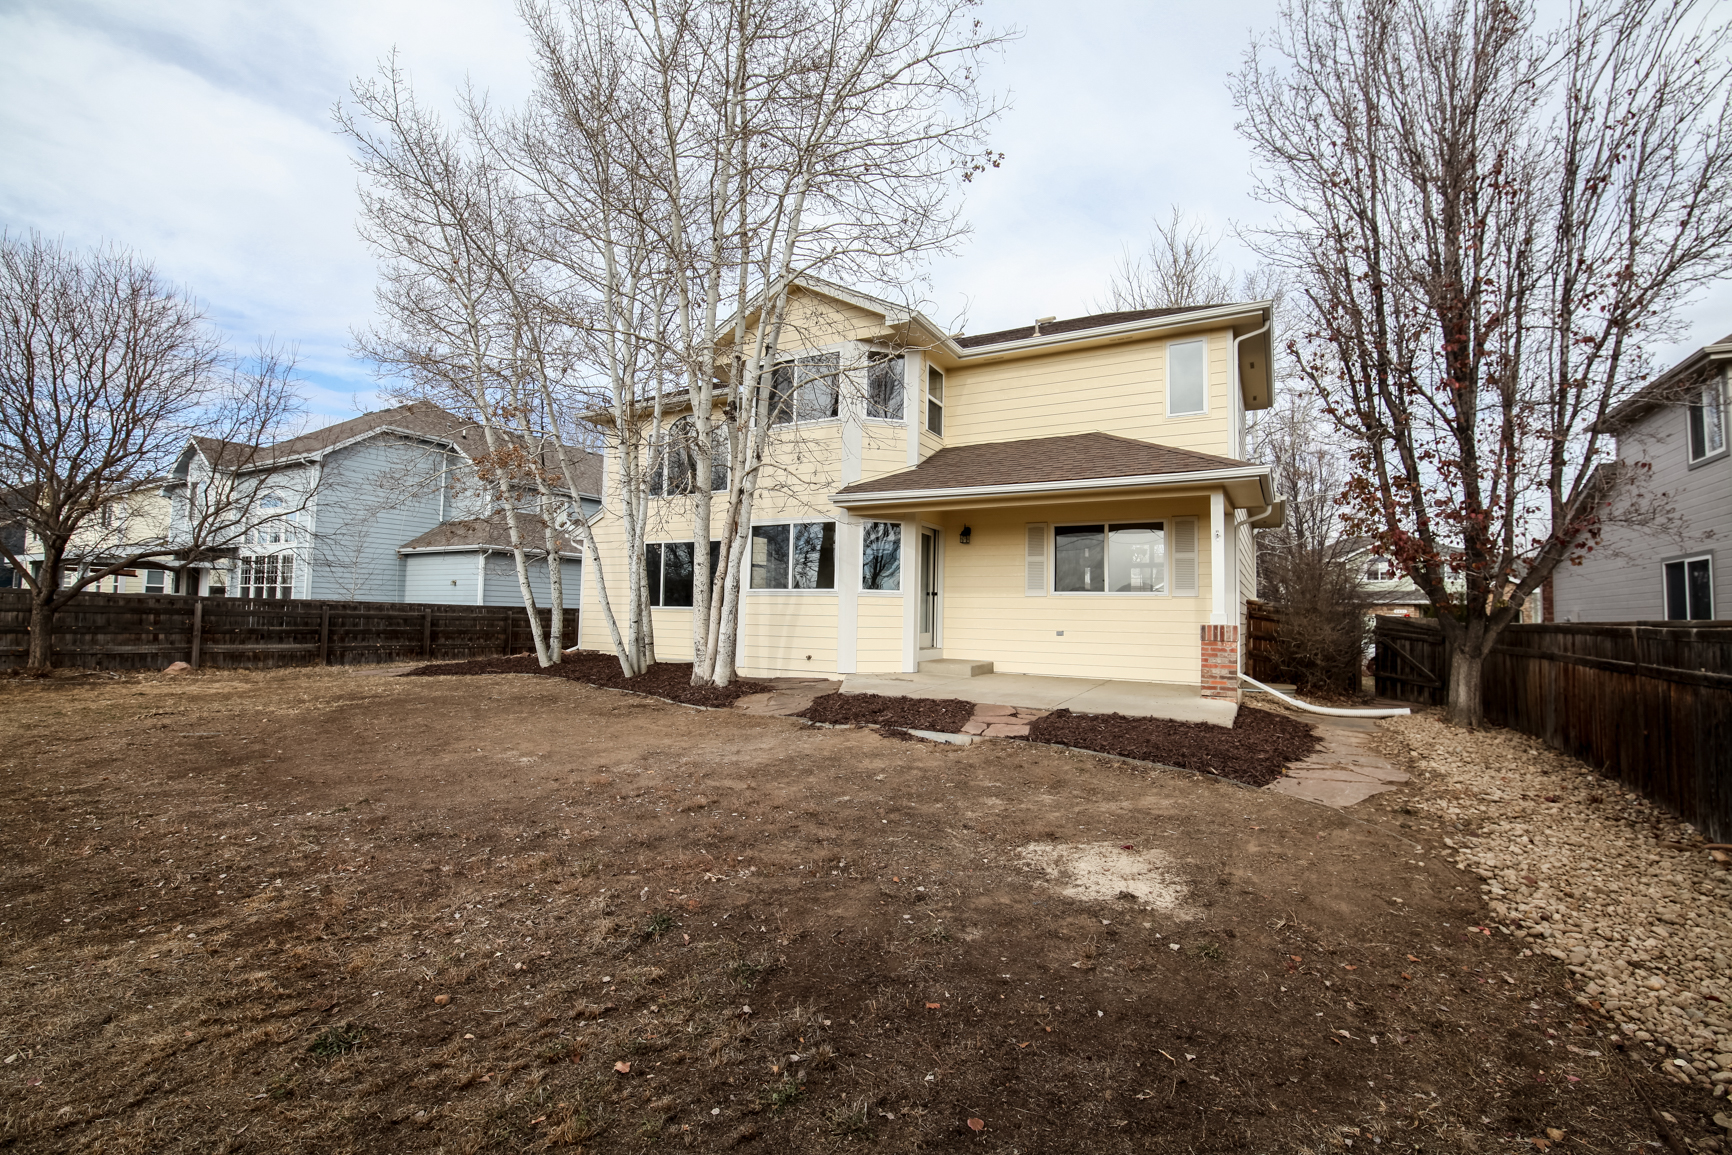 2436eagleview-5360